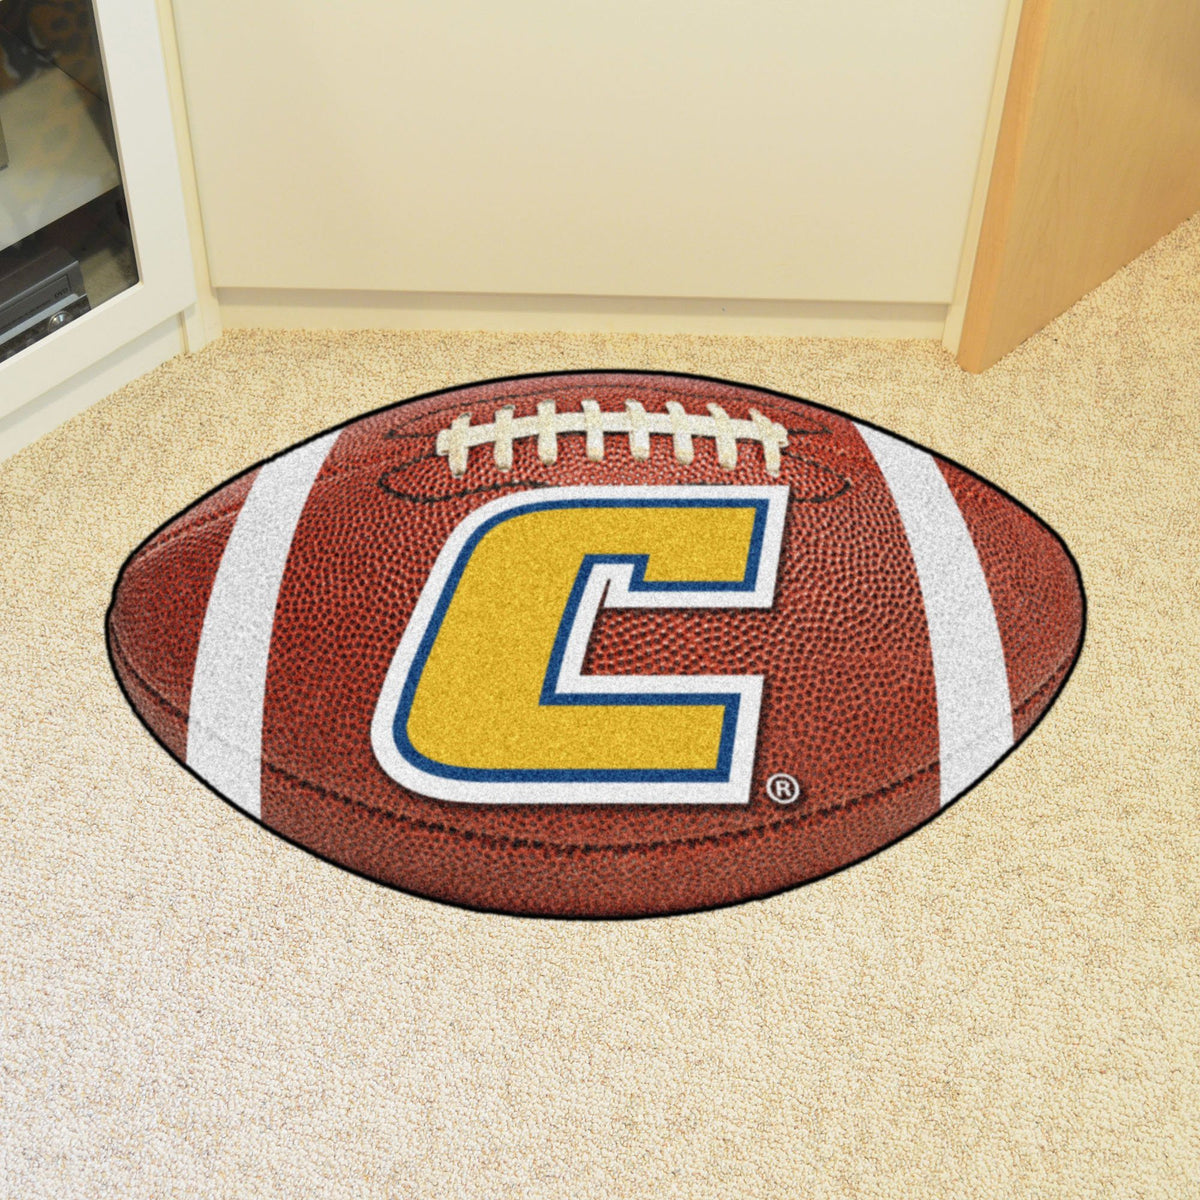 Collegiate - Football Mat: A - K Collegiate Mats, Rectangular Mats, Football Mat, Collegiate, Home Fan Mats Chattanooga